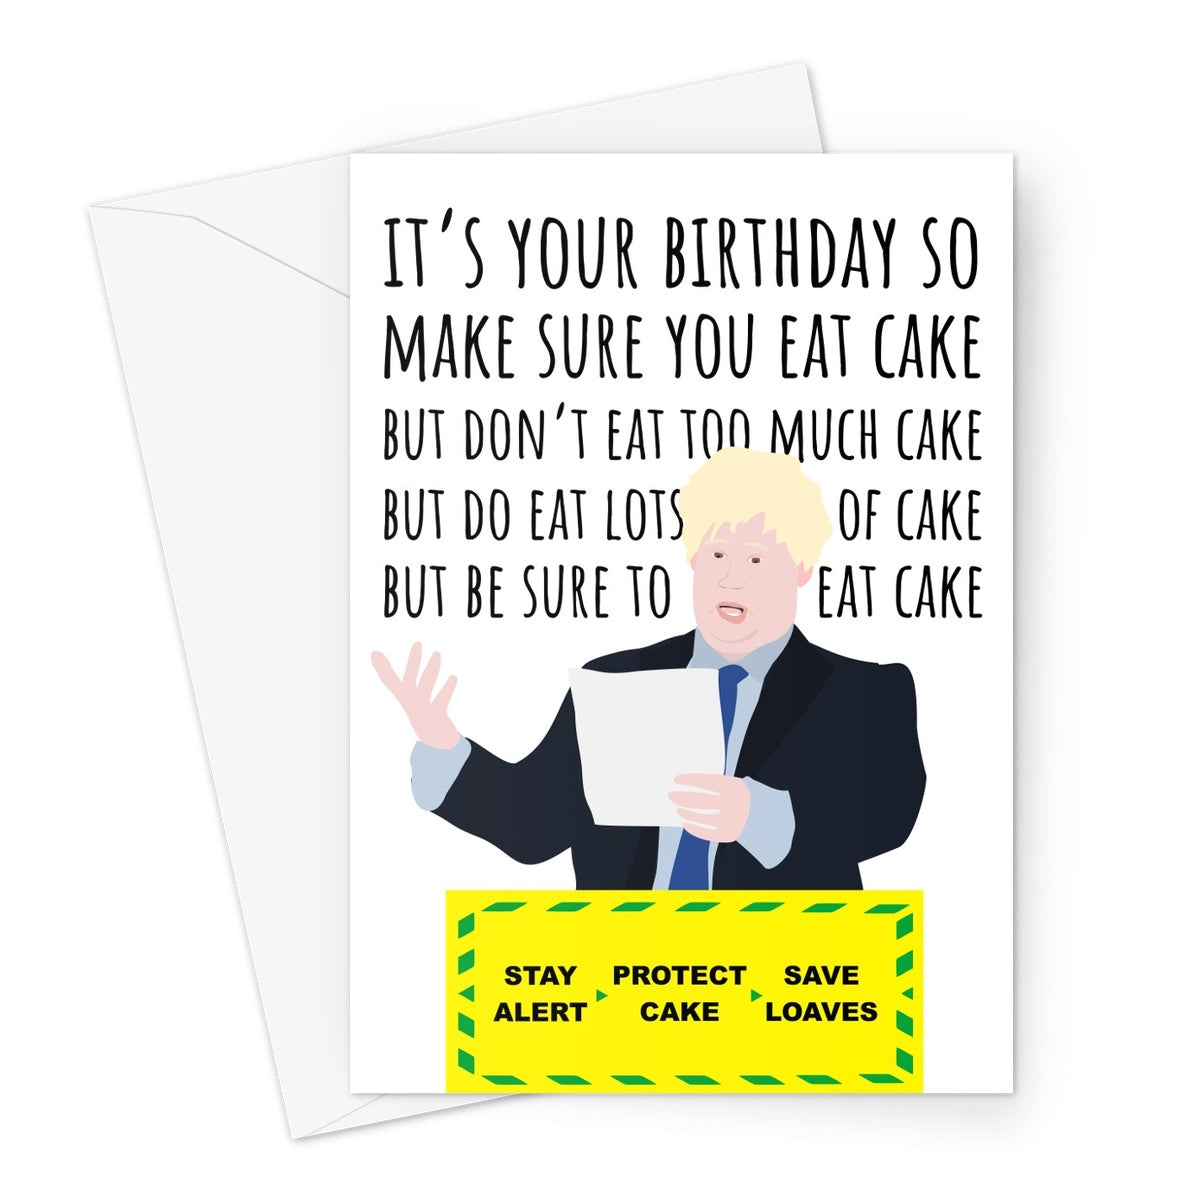 It's Your Birthday so Eat Lots of Cake, But Don't Eat Lots of Cake Funny Boris Johnson Impersonation Matt Lucas Bake Off Briefing Pandemic Quarantine Corona Virus Go to Work Greeting Card